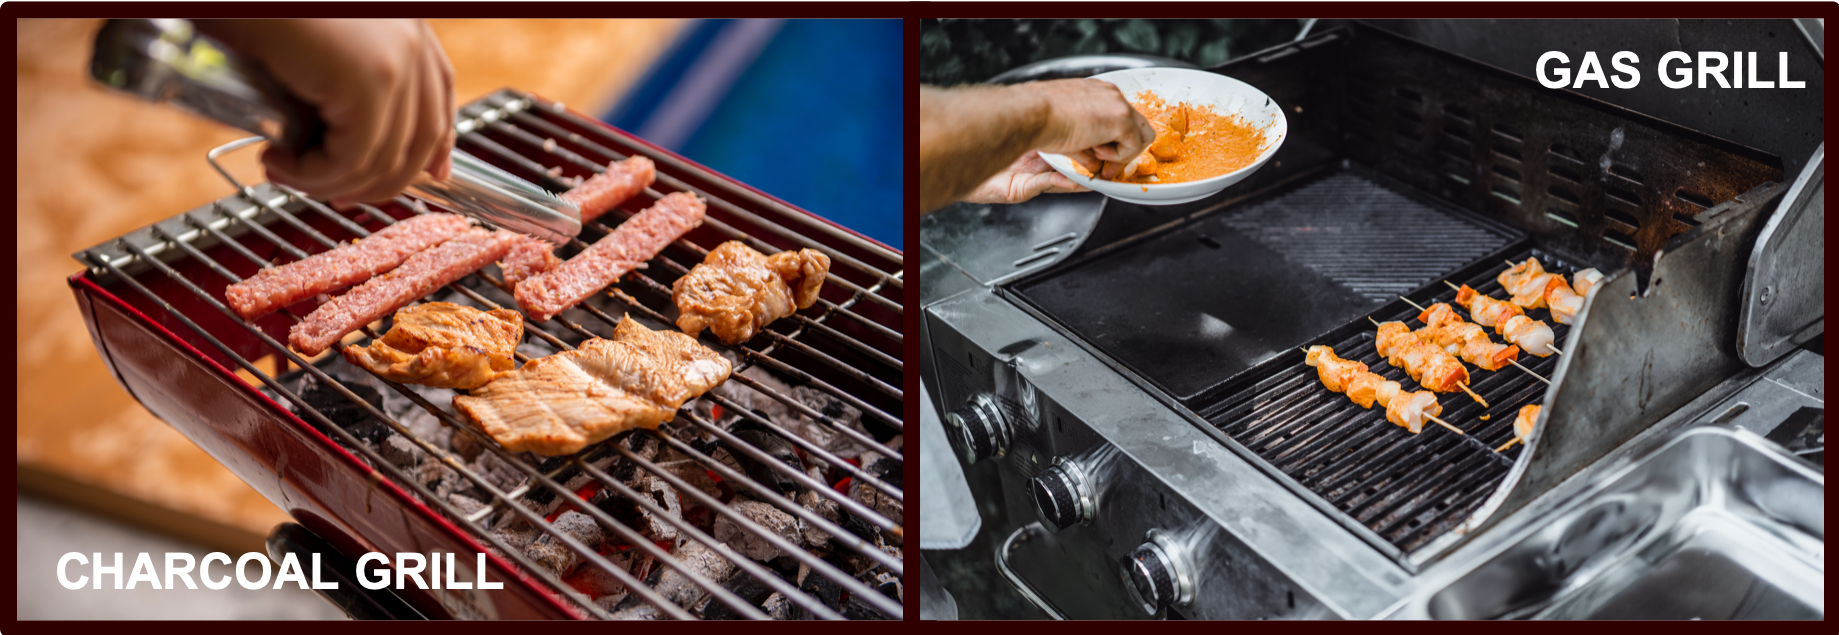 Gas Grill and Charcoal Grill | BBQanswers